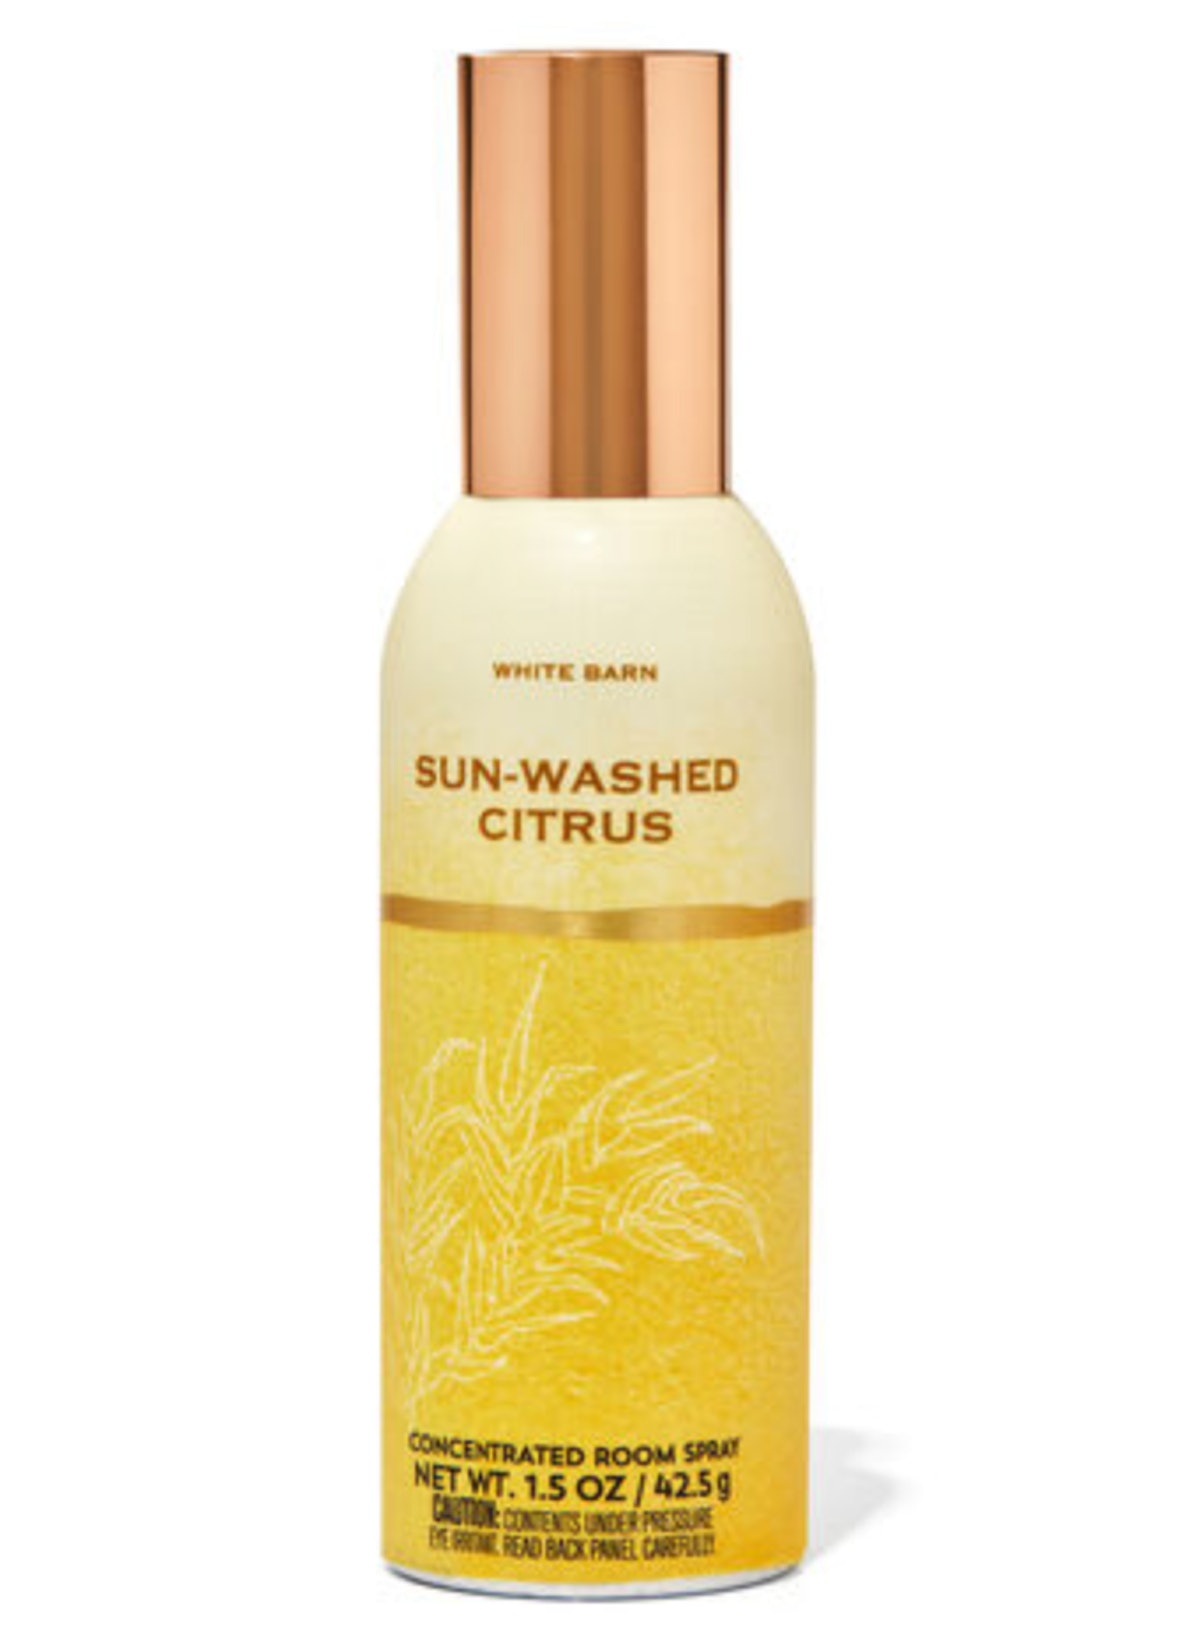 Sun-Washed Citrus Concentrated Room Spray